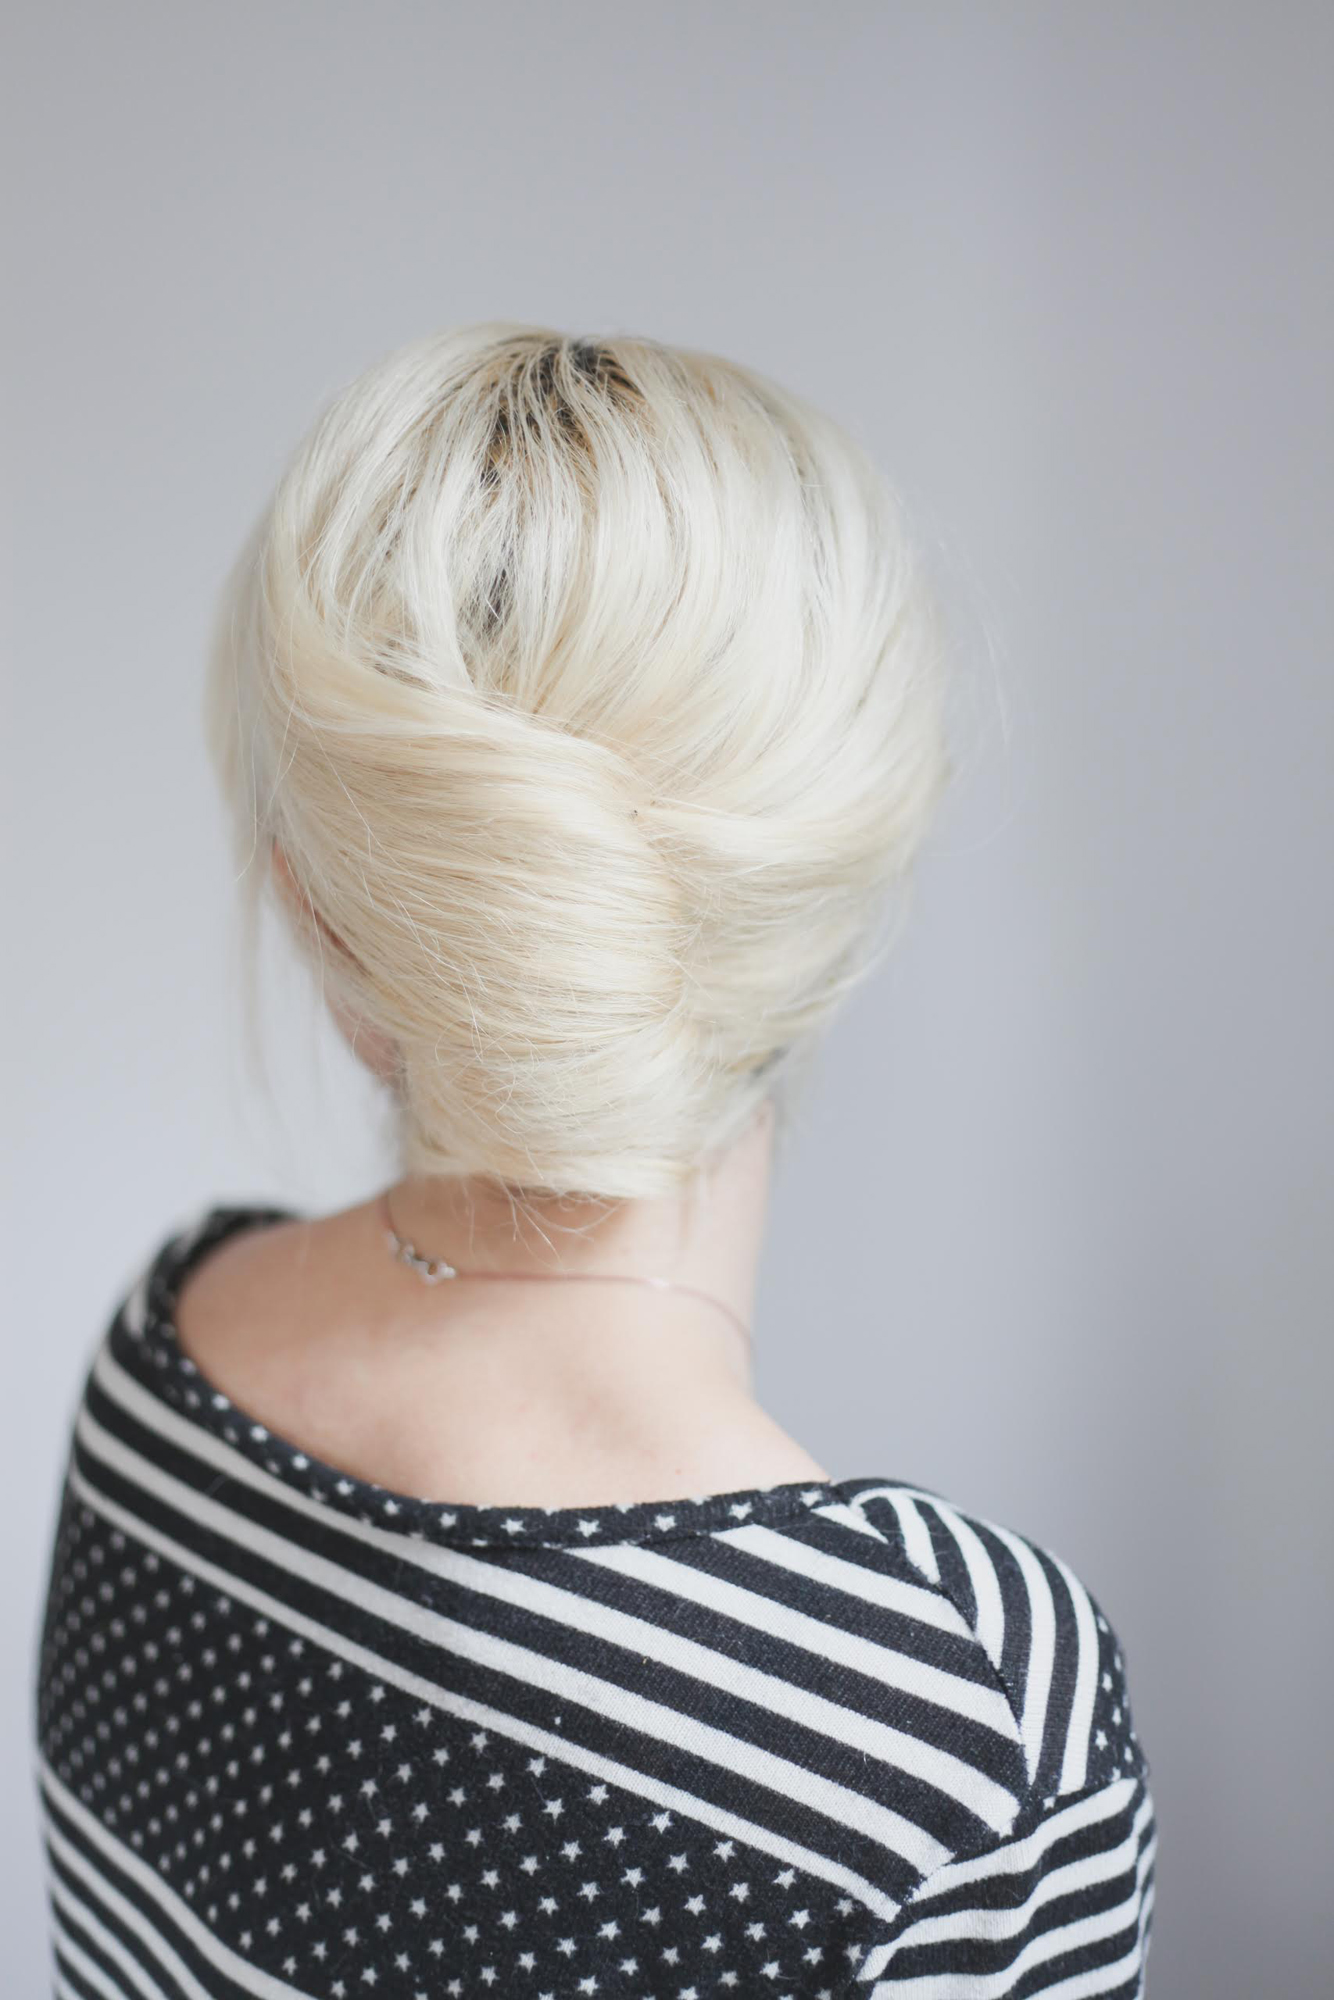 Pretty Ideas For A Bad Hair Day Real Simple